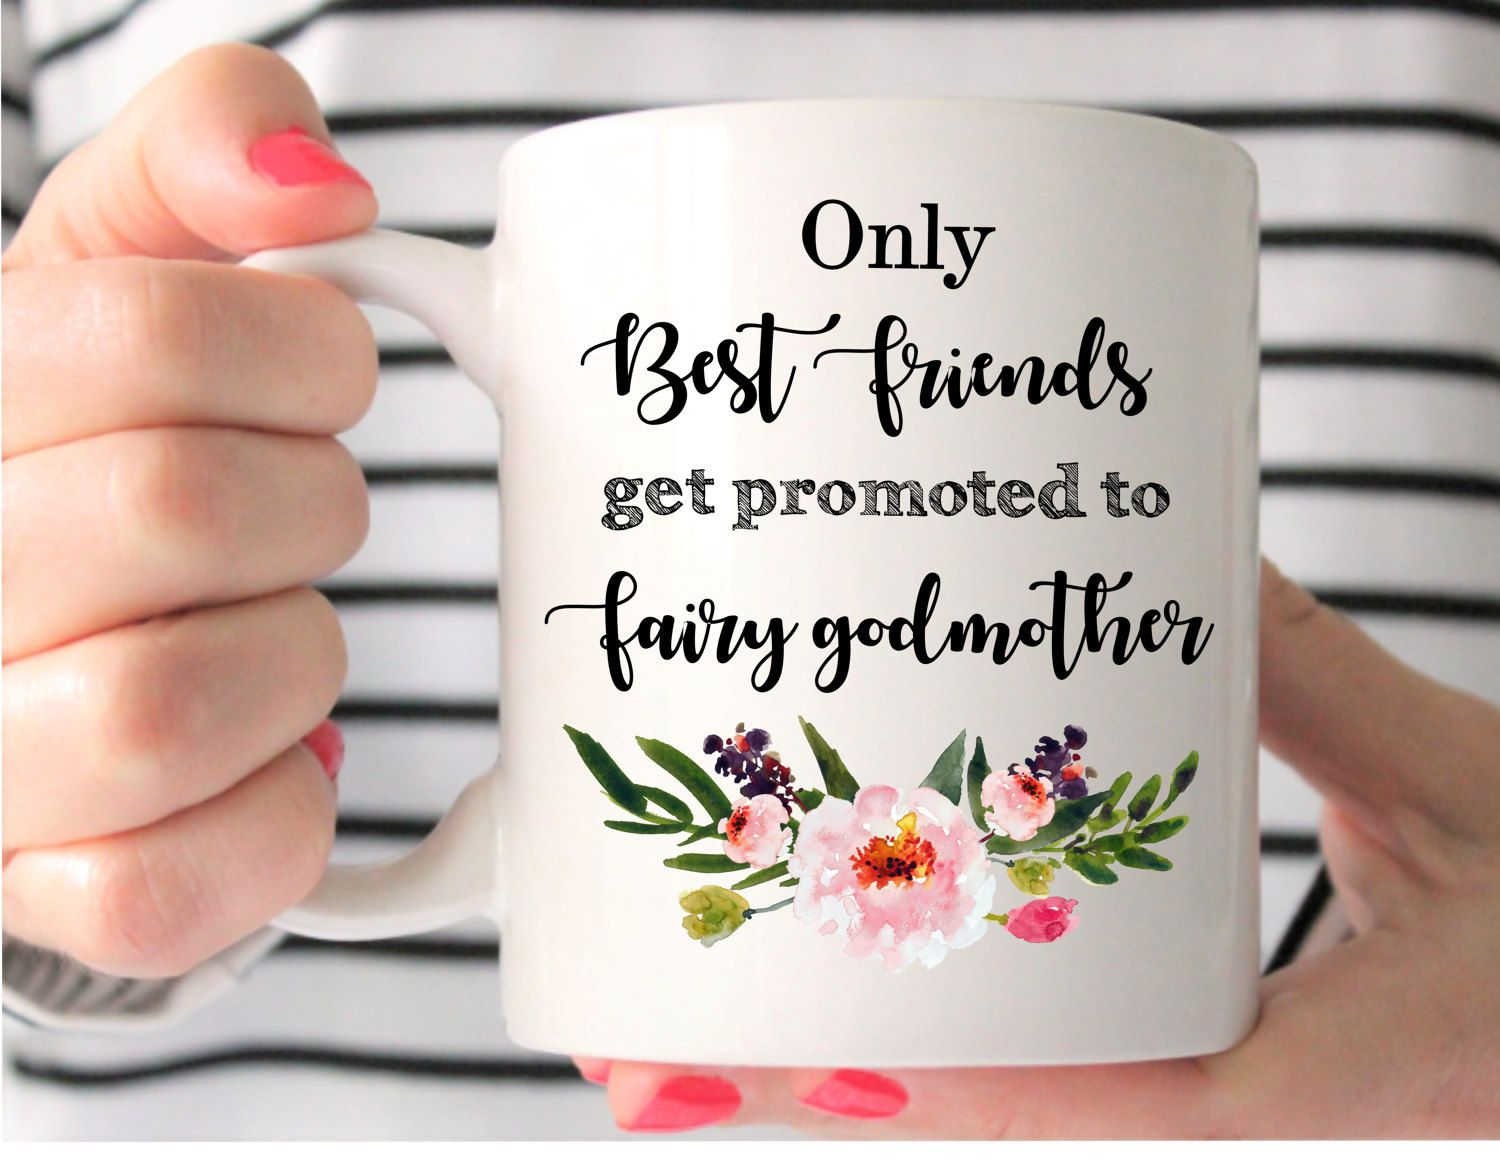 Only Best Friends Get Promoted to Fairy Godmother Godmother Gift Godmother Mug Will You Be My Godmother